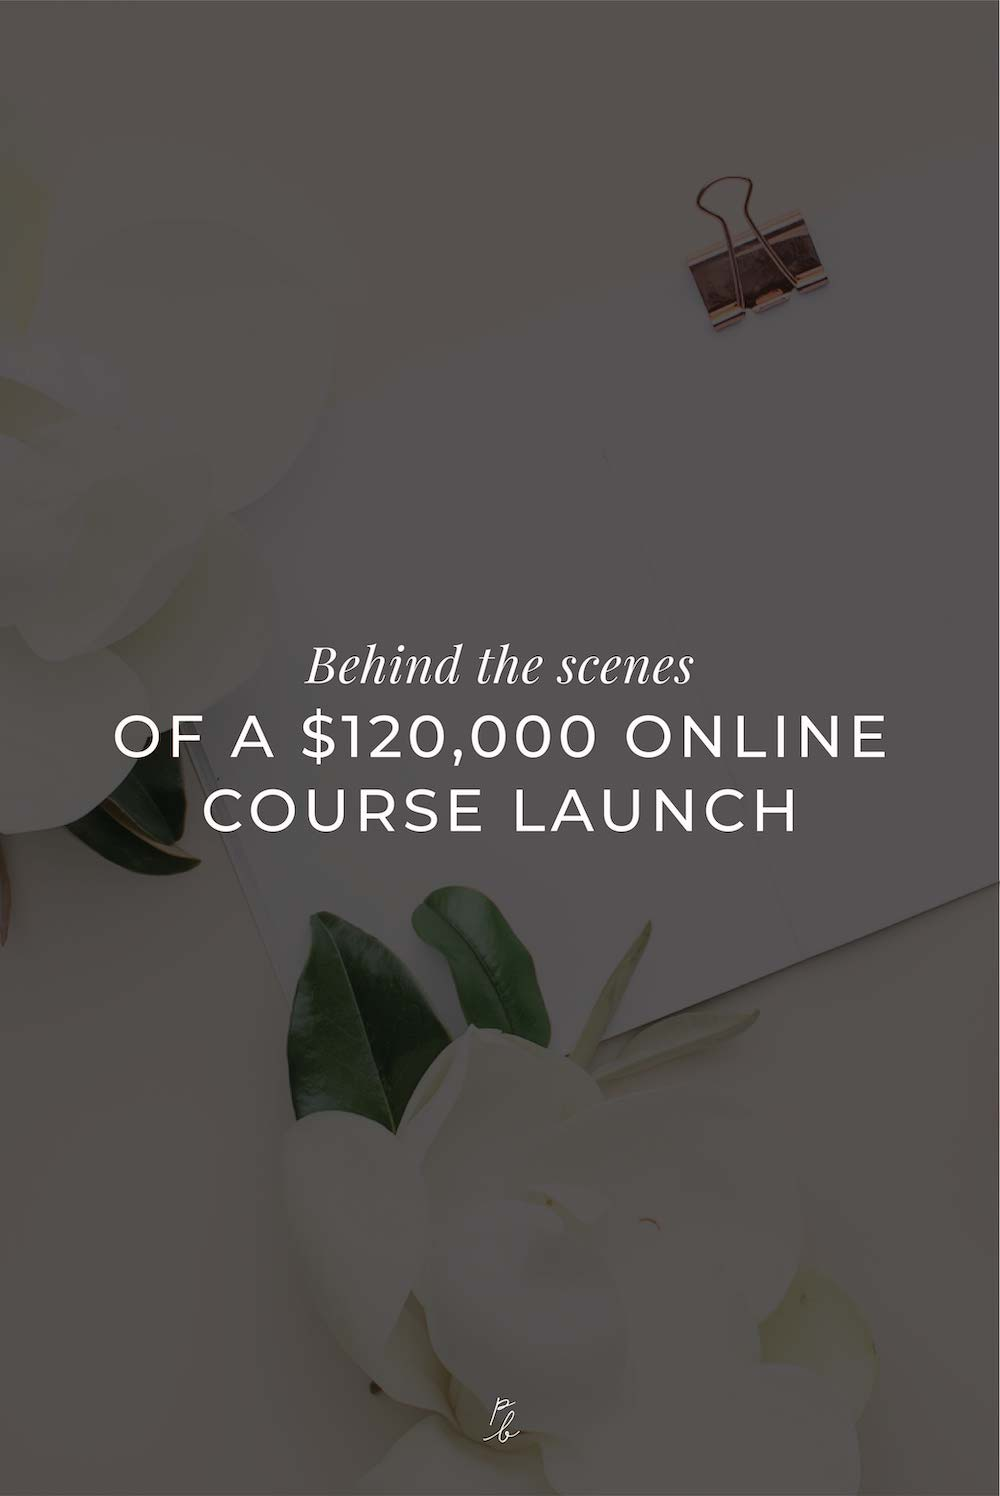 Behind the scenes of a $120000 online course launch-2.jpg